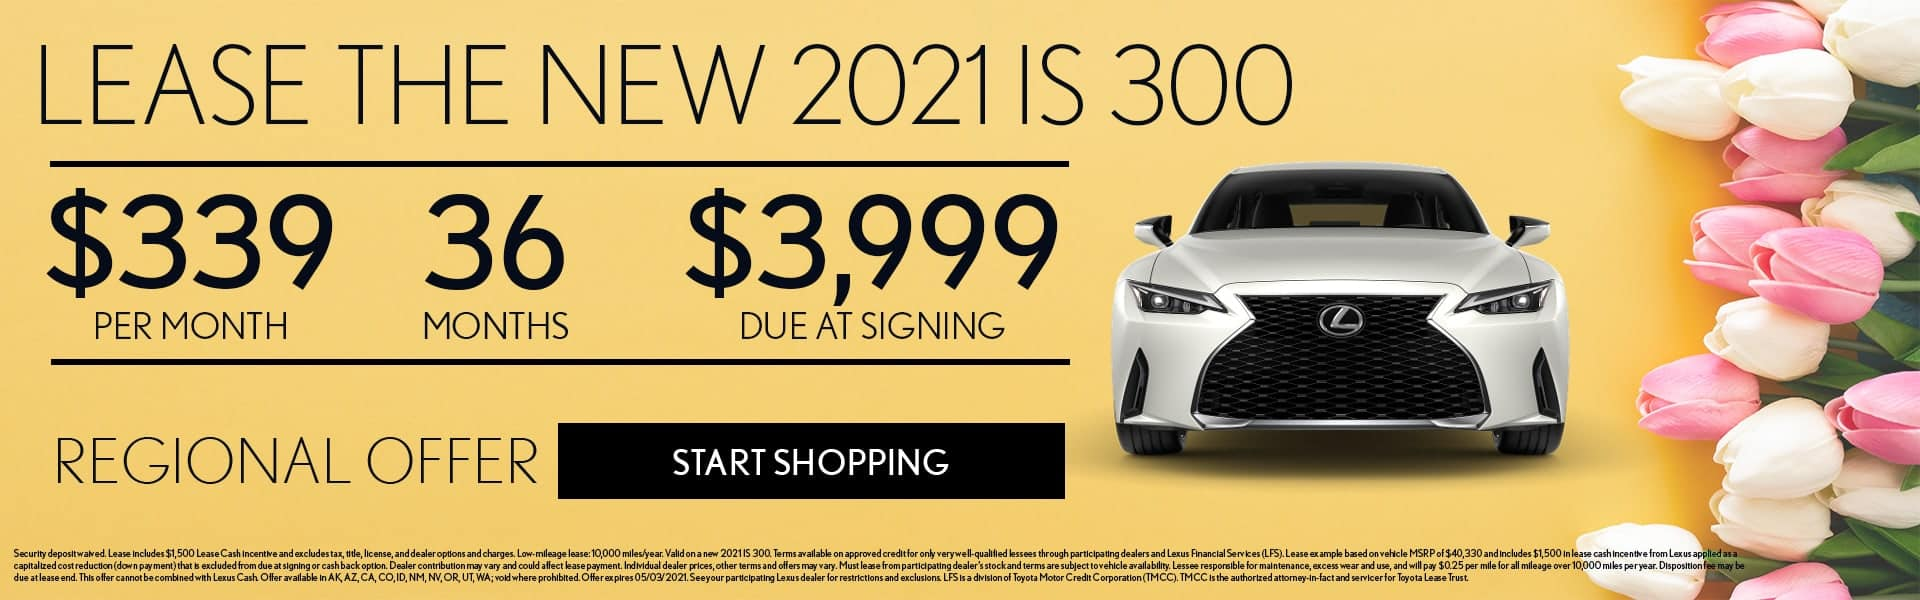 2021 Lexus IS offer